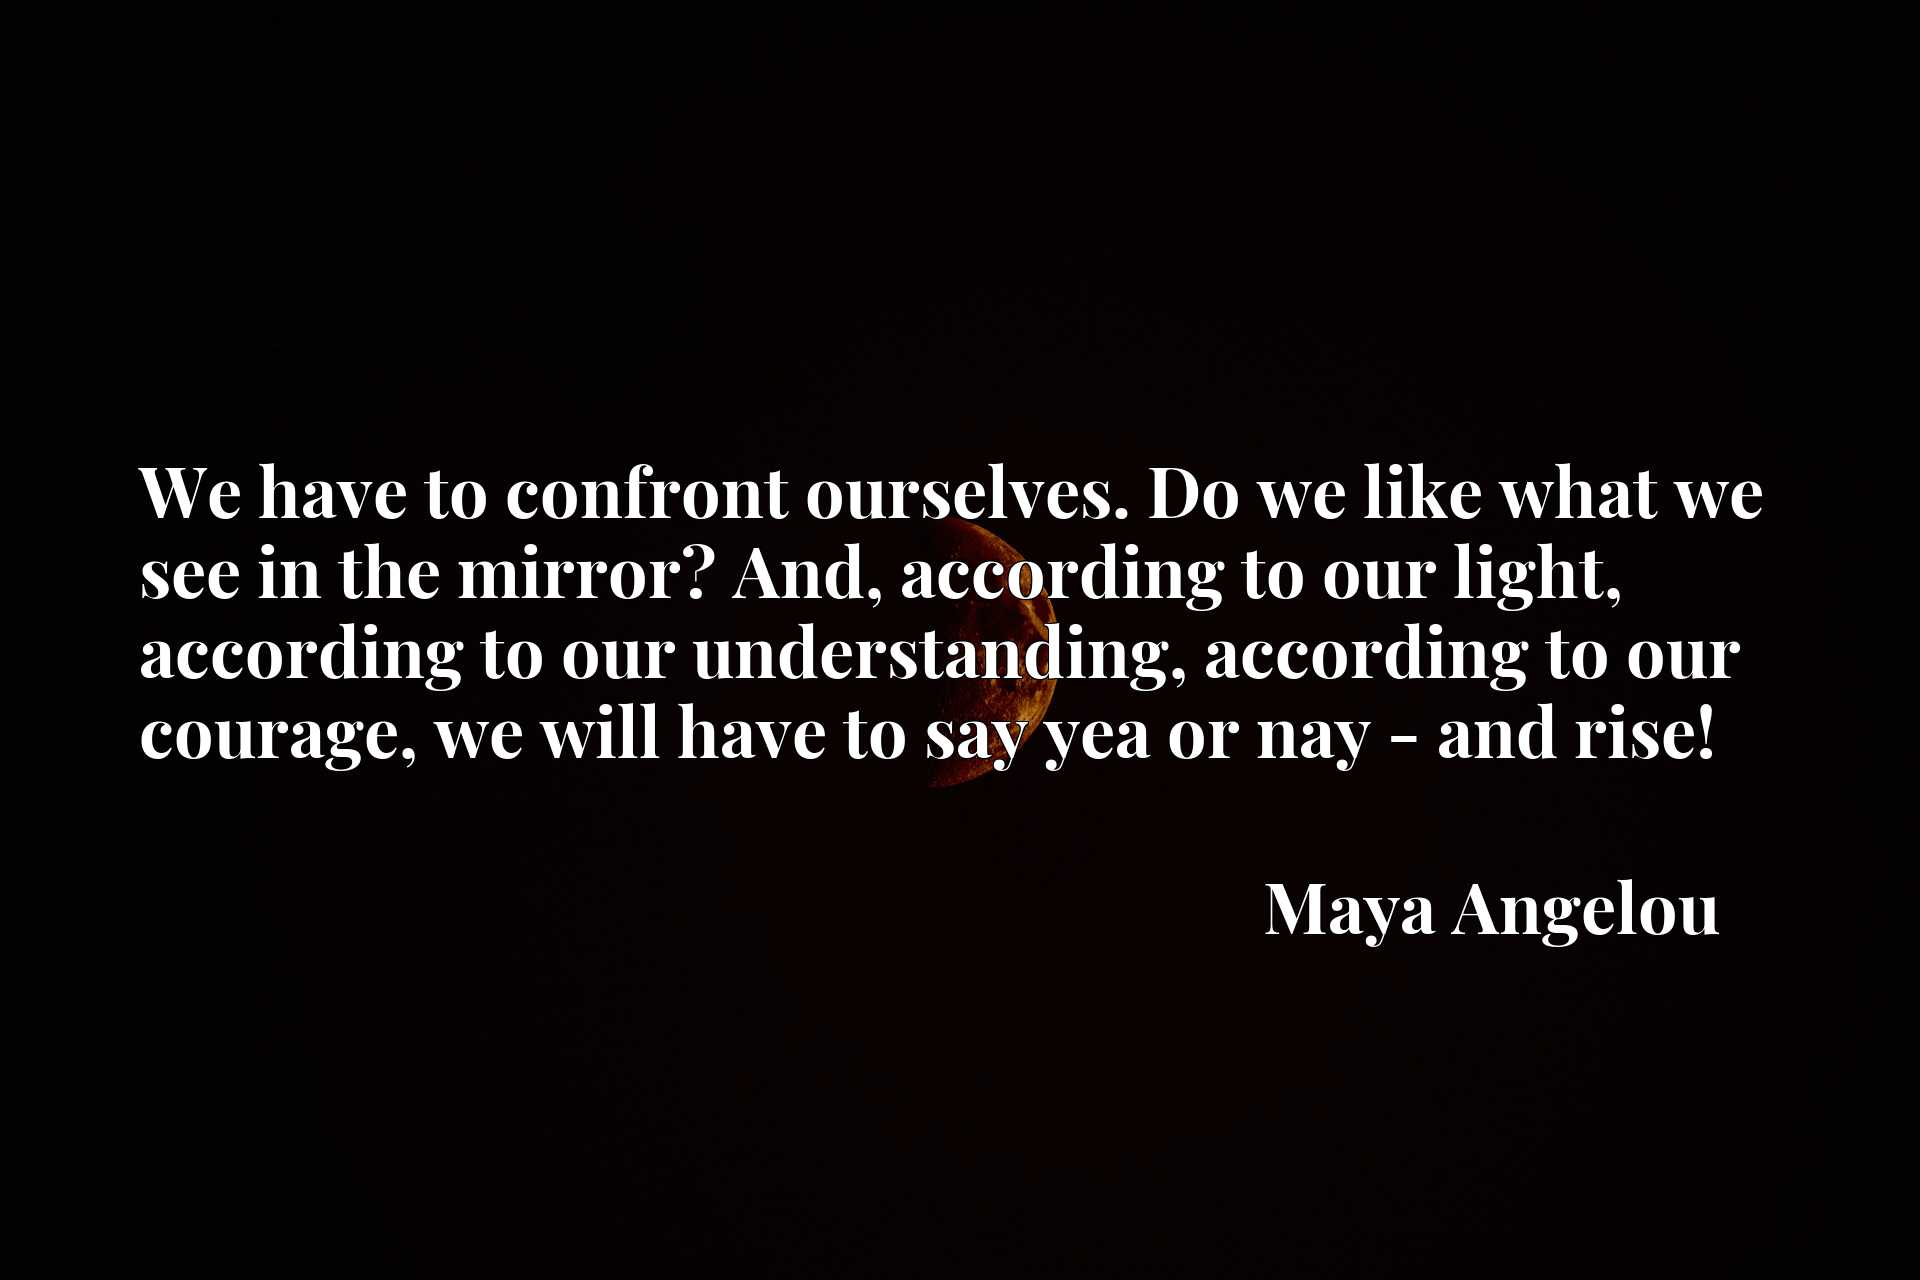 We have to confront ourselves. Do we like what we see in the mirror? And, according to our light, according to our understanding, according to our courage, we will have to say yea or nay - and rise!